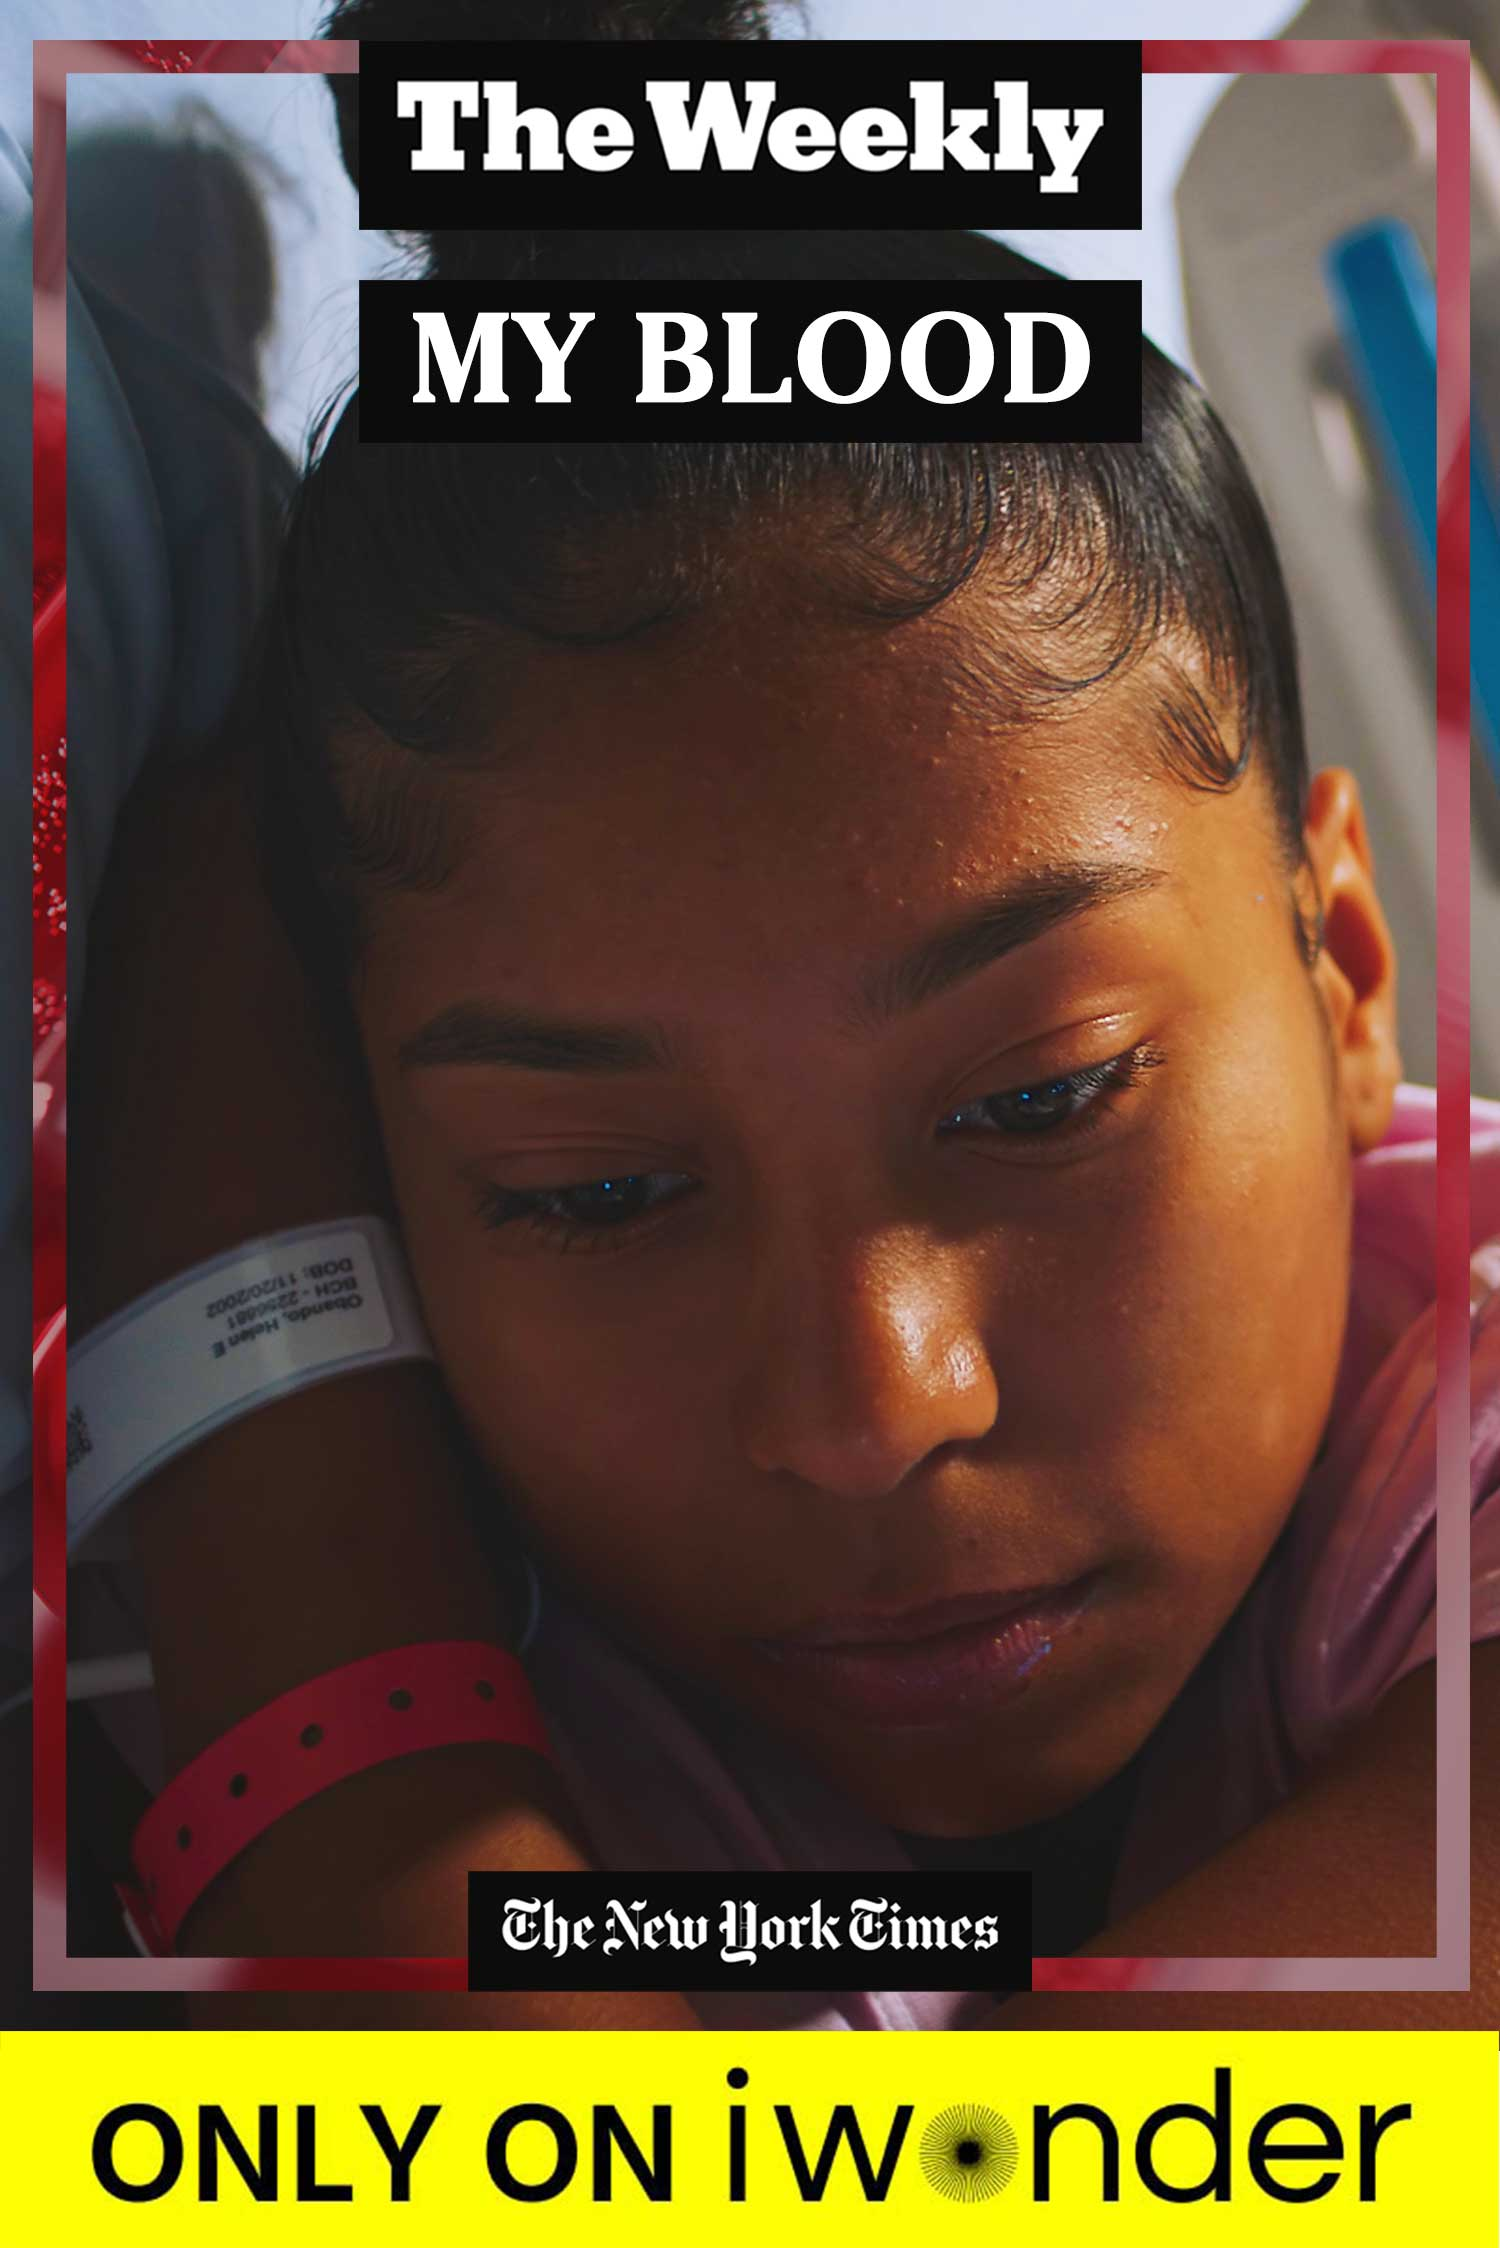 The Weekly: My Blood